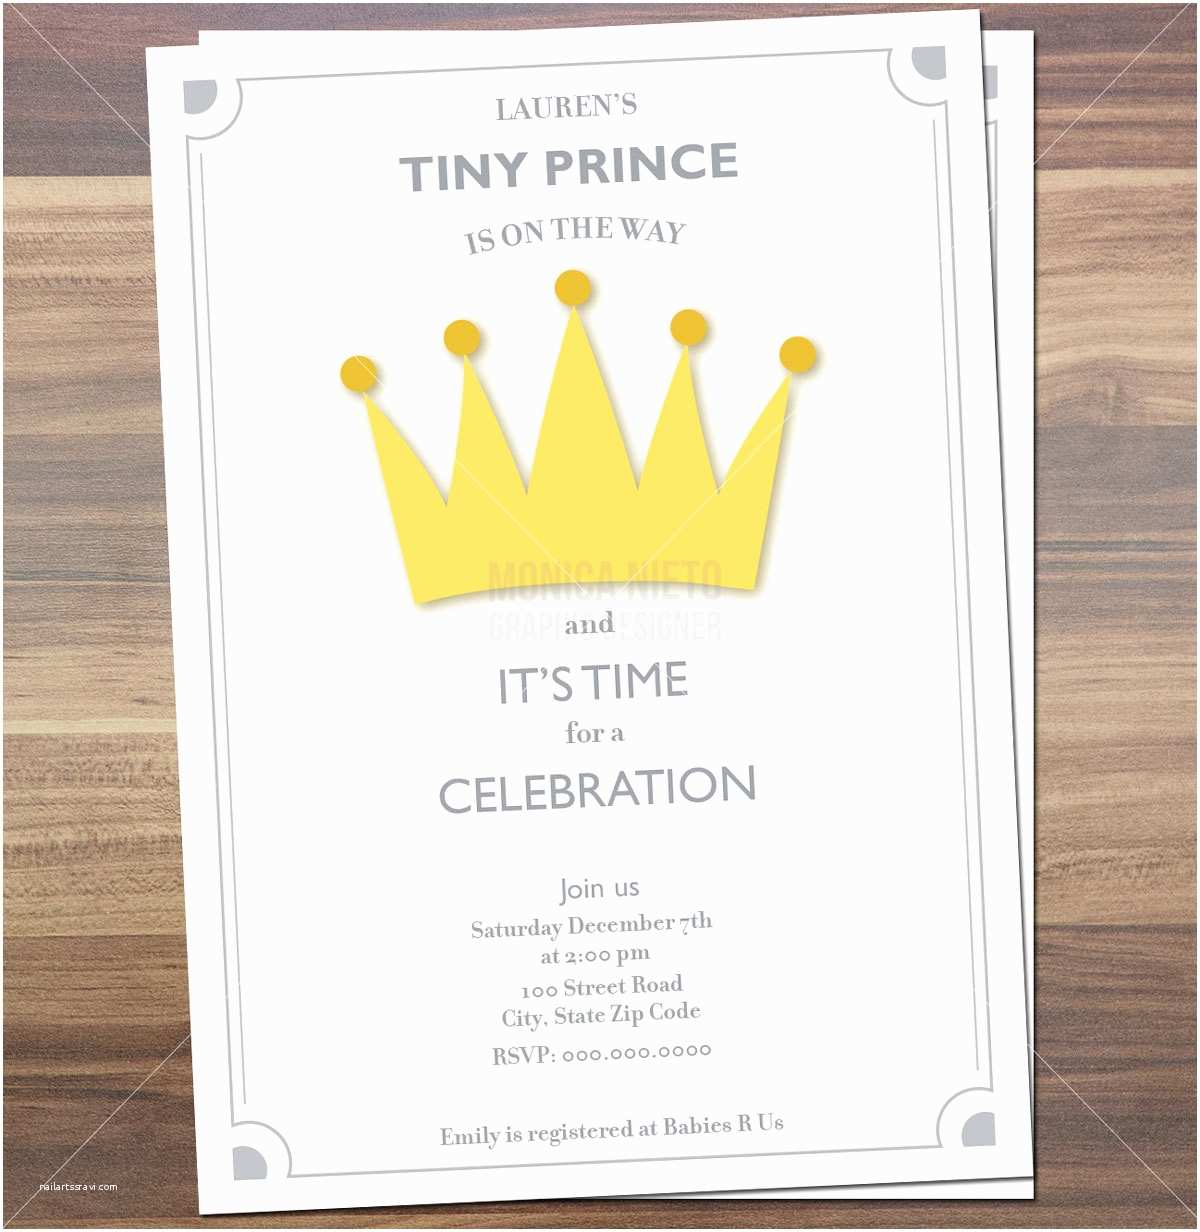 Prince Baby Shower Invitations Printable Royal Prince Baby Shower Invitation Little Prince